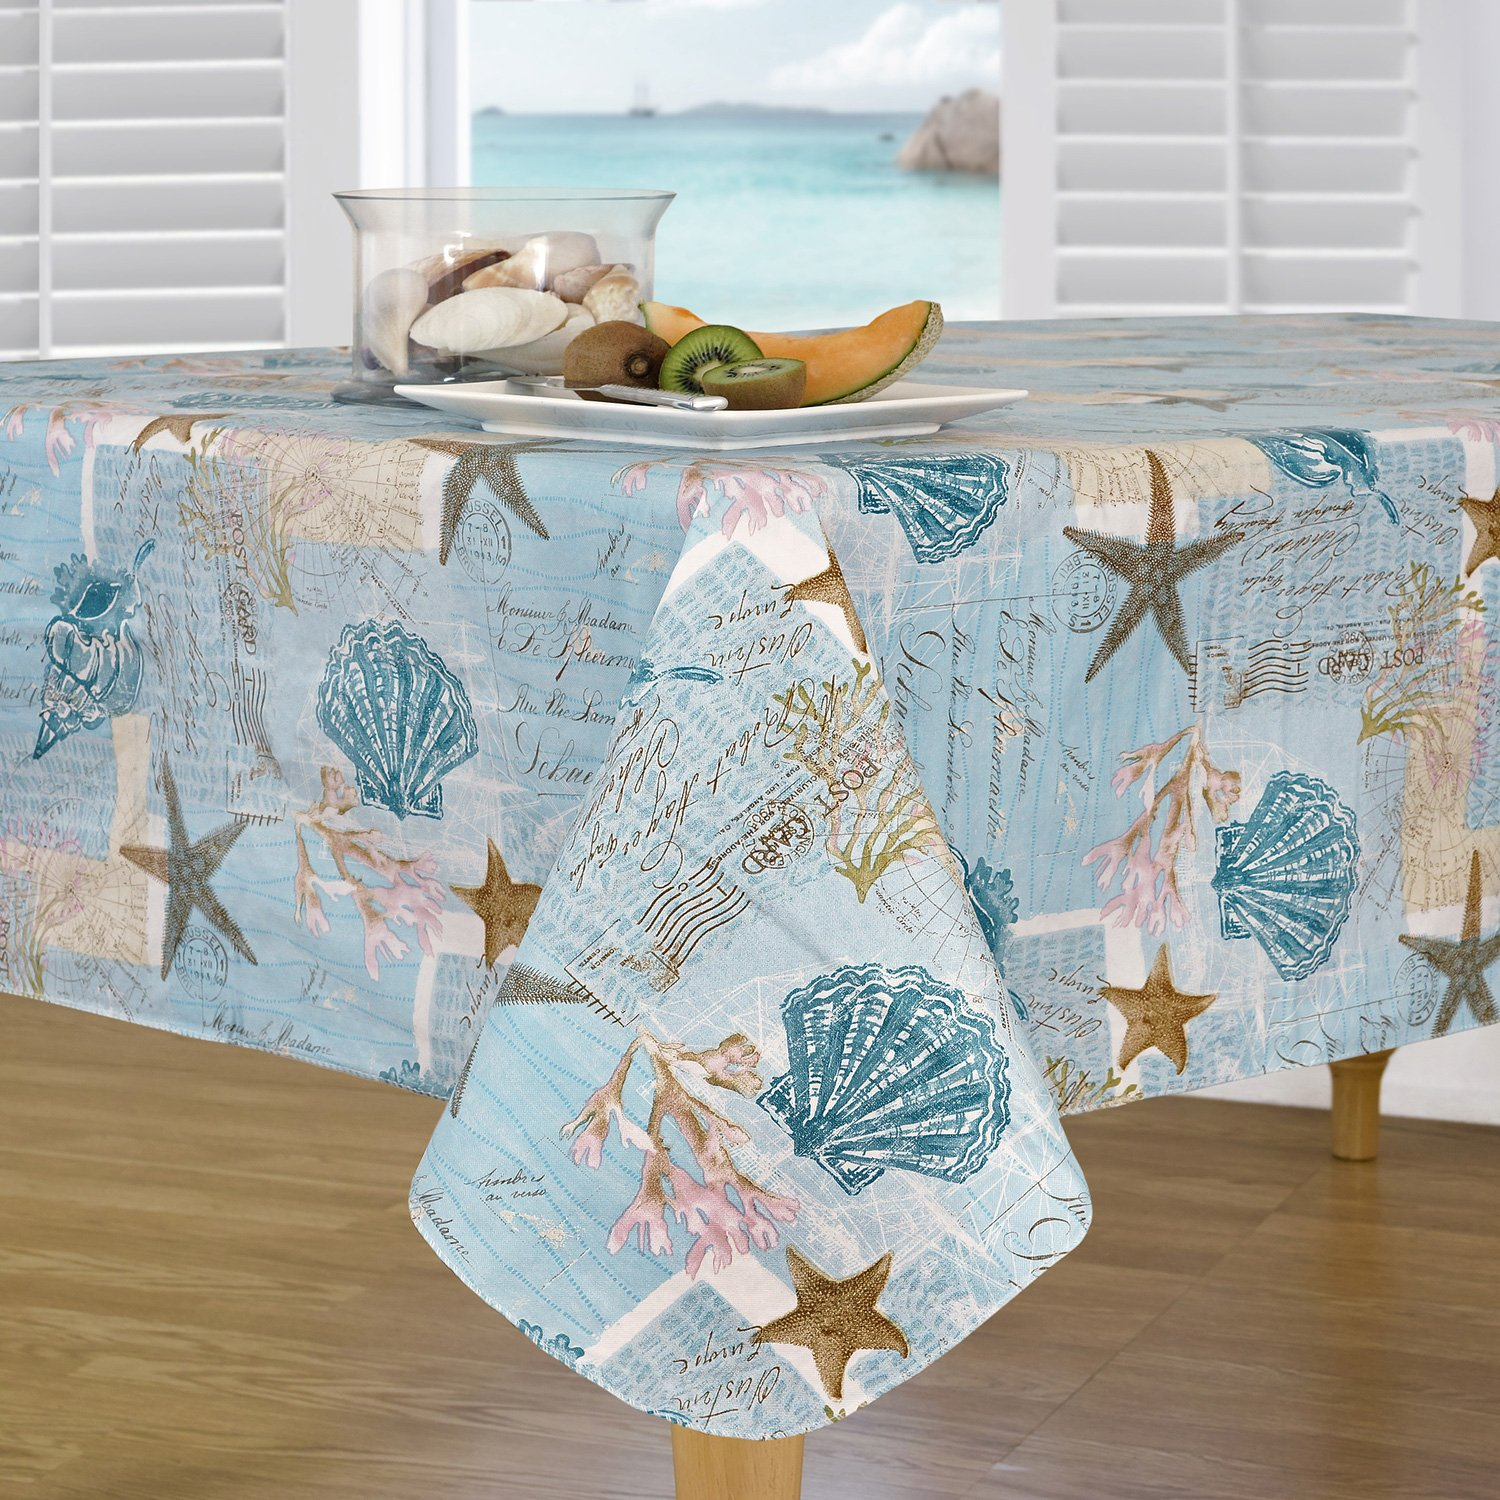 Everyday Luxuries by Newbridge Coastal Haven Flannel Backed Indoor Outdoor Vinyl Table Linens, 60-Inch by 84-Inch Oblong (Rectangle) Tablecloth